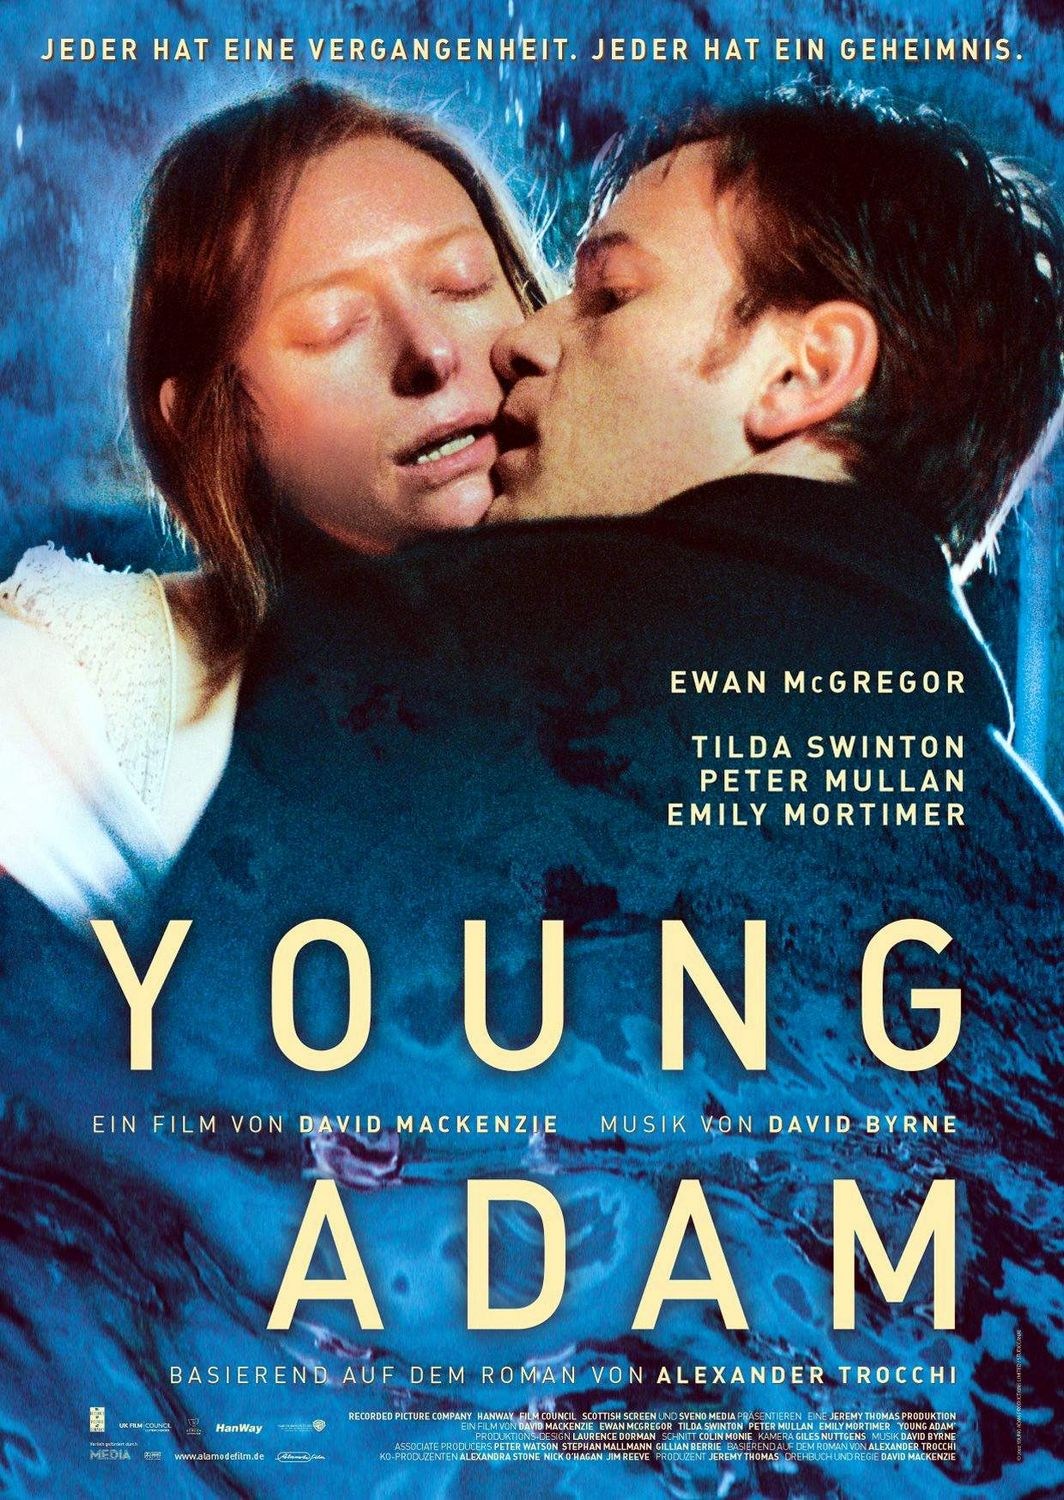 Young adam movie for free download movies online watch free movies